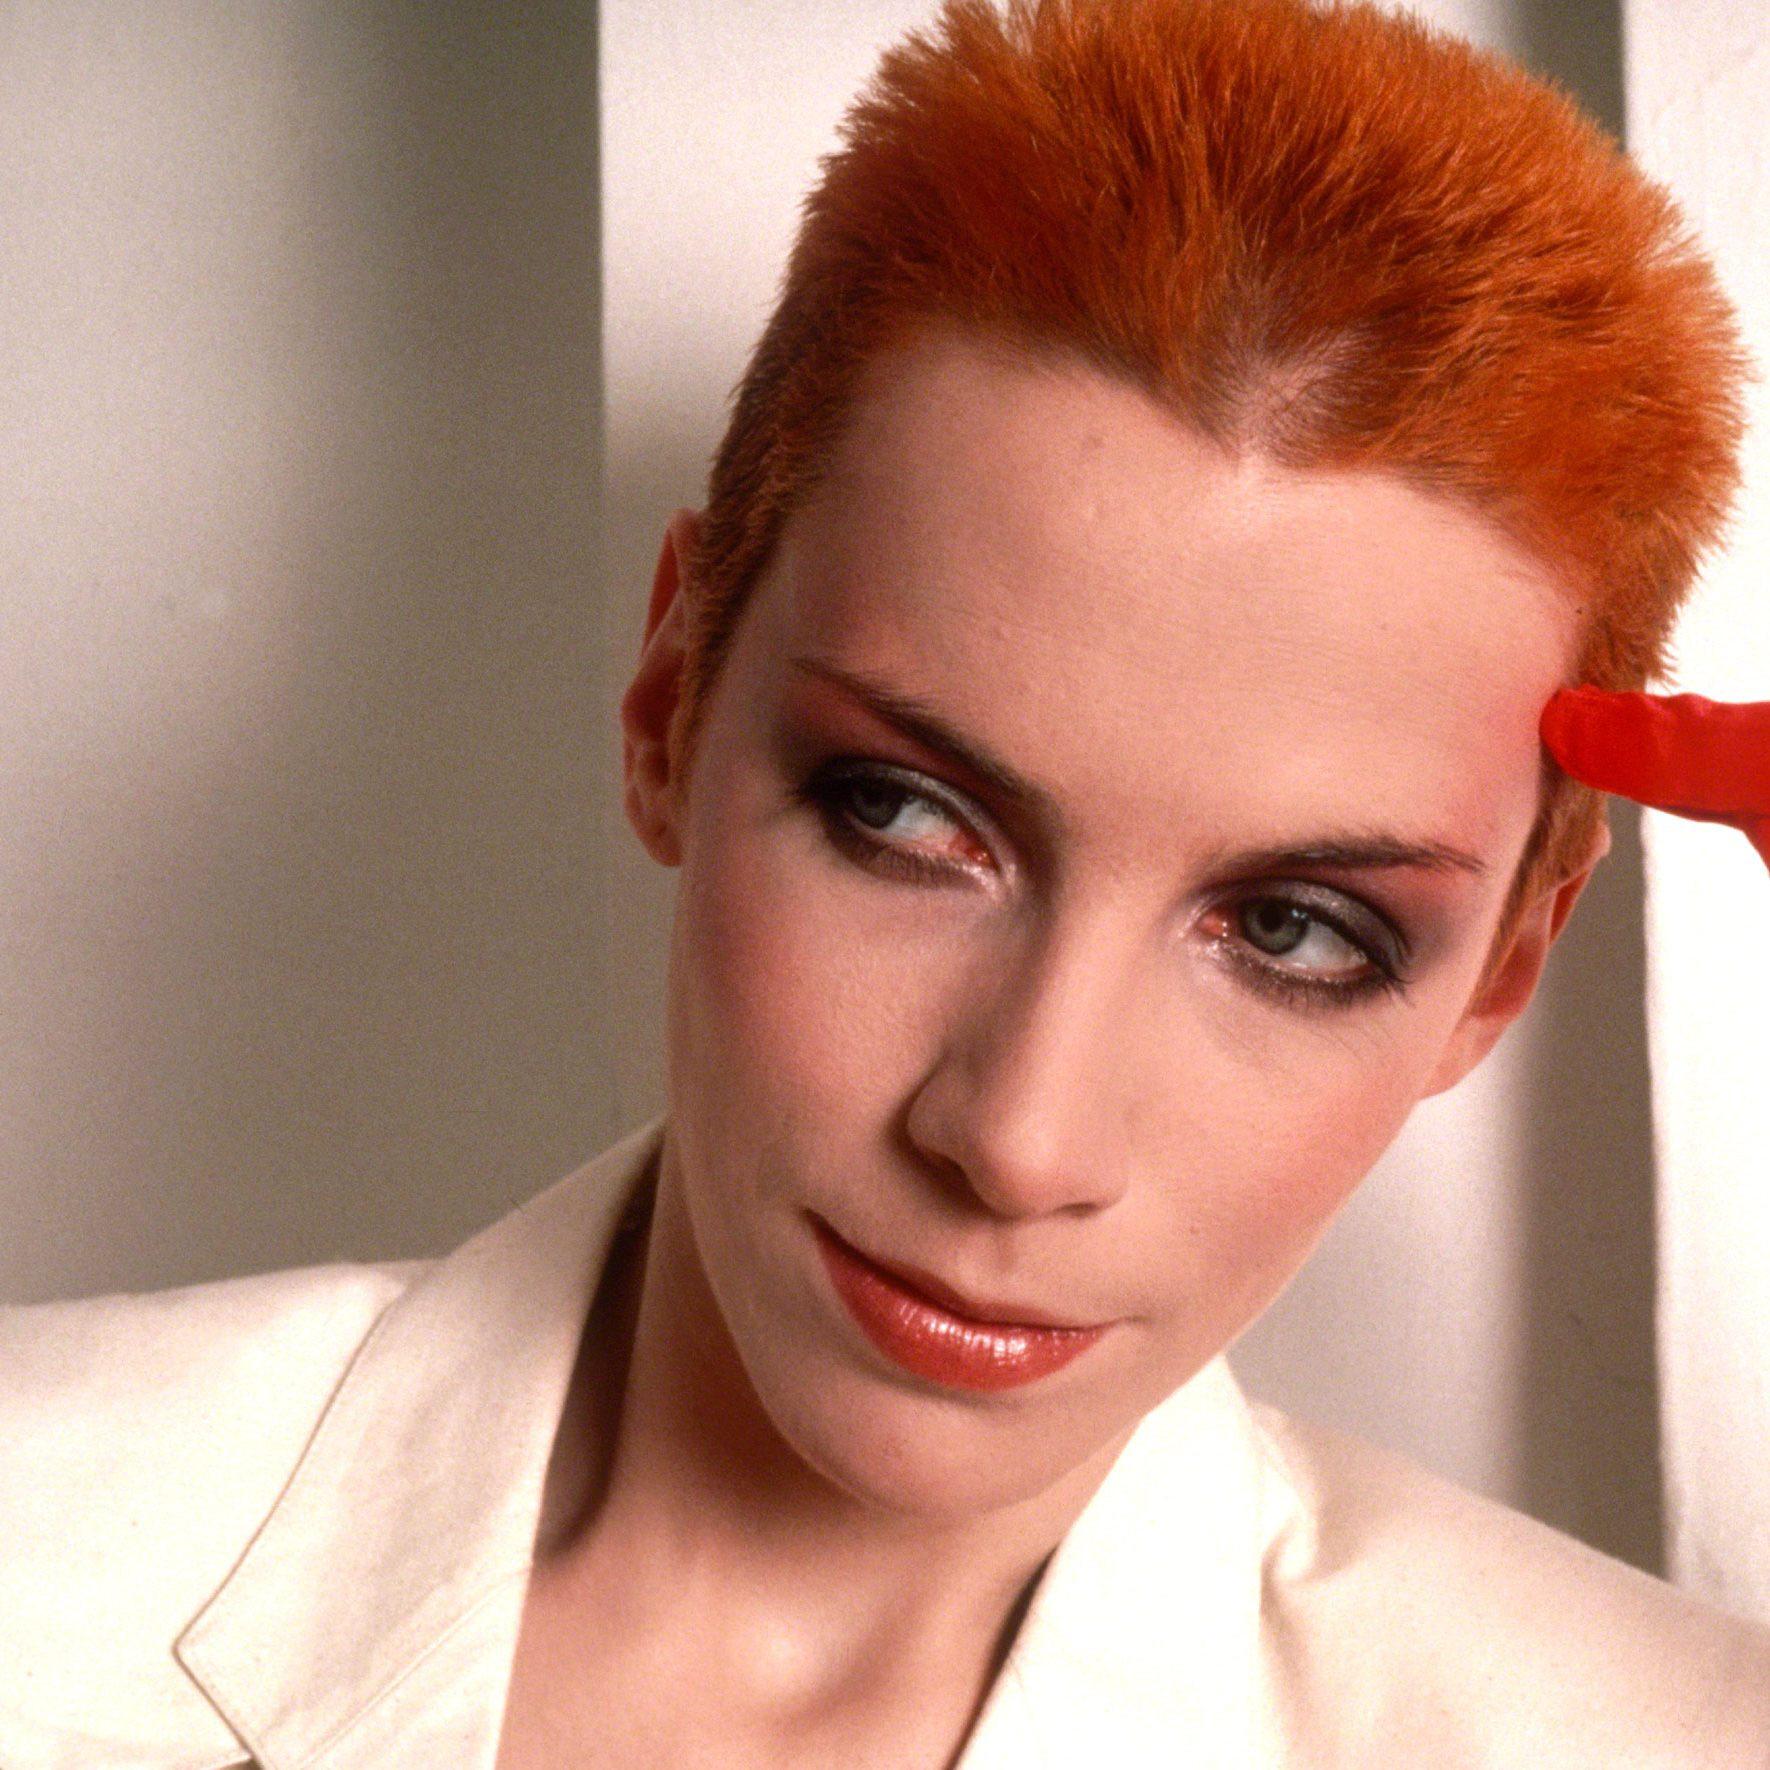 gettyimages 696611495 e1574432837621 20 Sweet Facts About Pop Icons Eurythmics